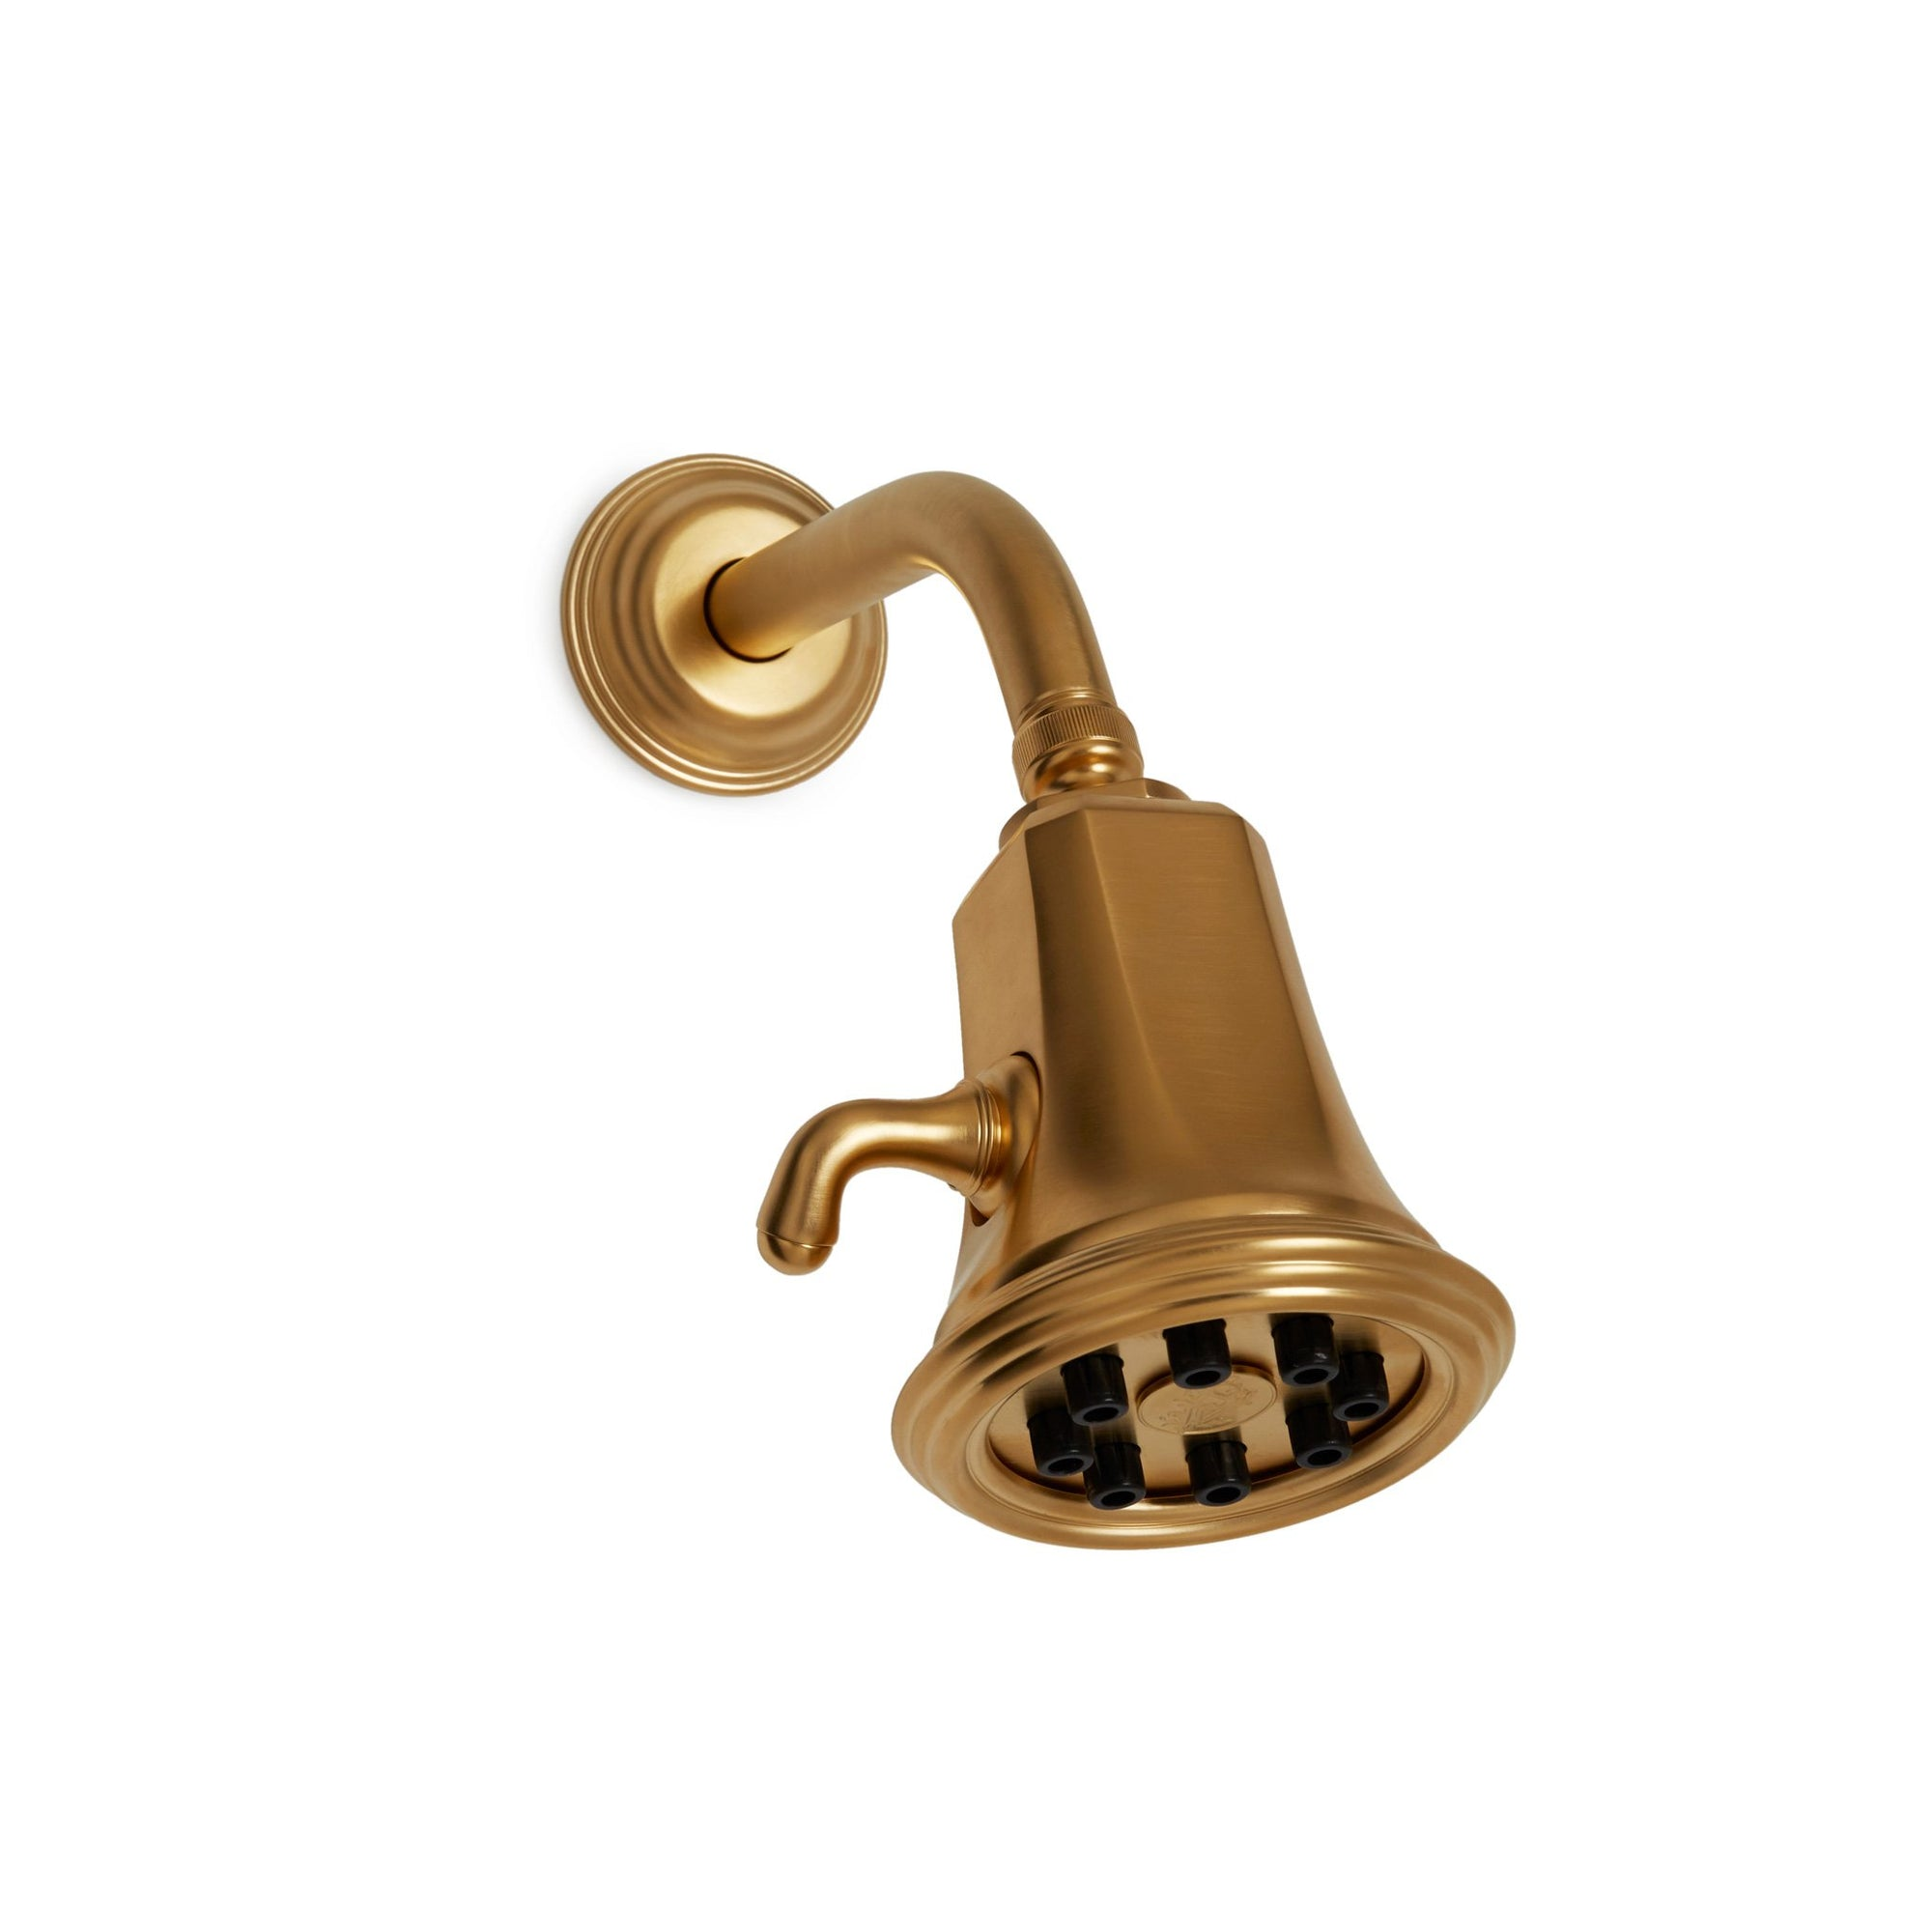 0841SHHD-GP Sherle Wagner International Grey Shower Head with Grey Flange in Gold Plate metal finish